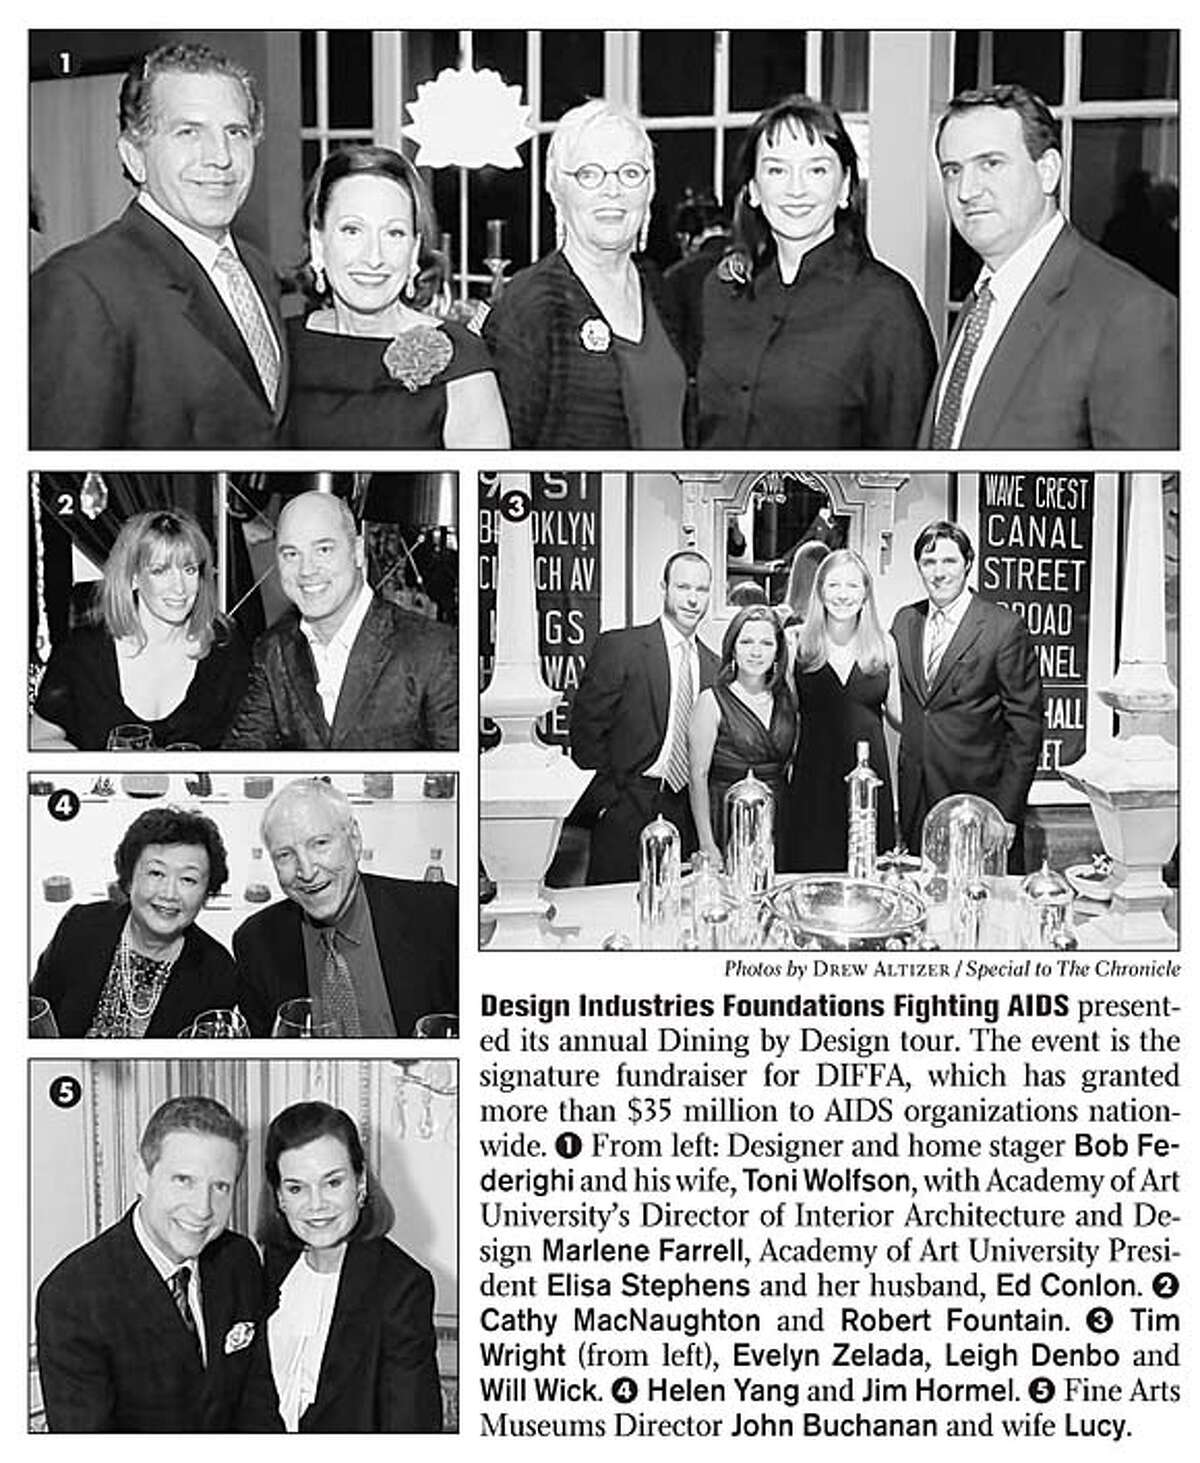 Design Industries Foundations Fighting AIDS presented its annual Dining by Design tour. The event is the signature fundraiser for DIFFA, which has granted more than $35 million to AIDS organizations nationwide. Photos by Drew Altizer, special to the Chronicle